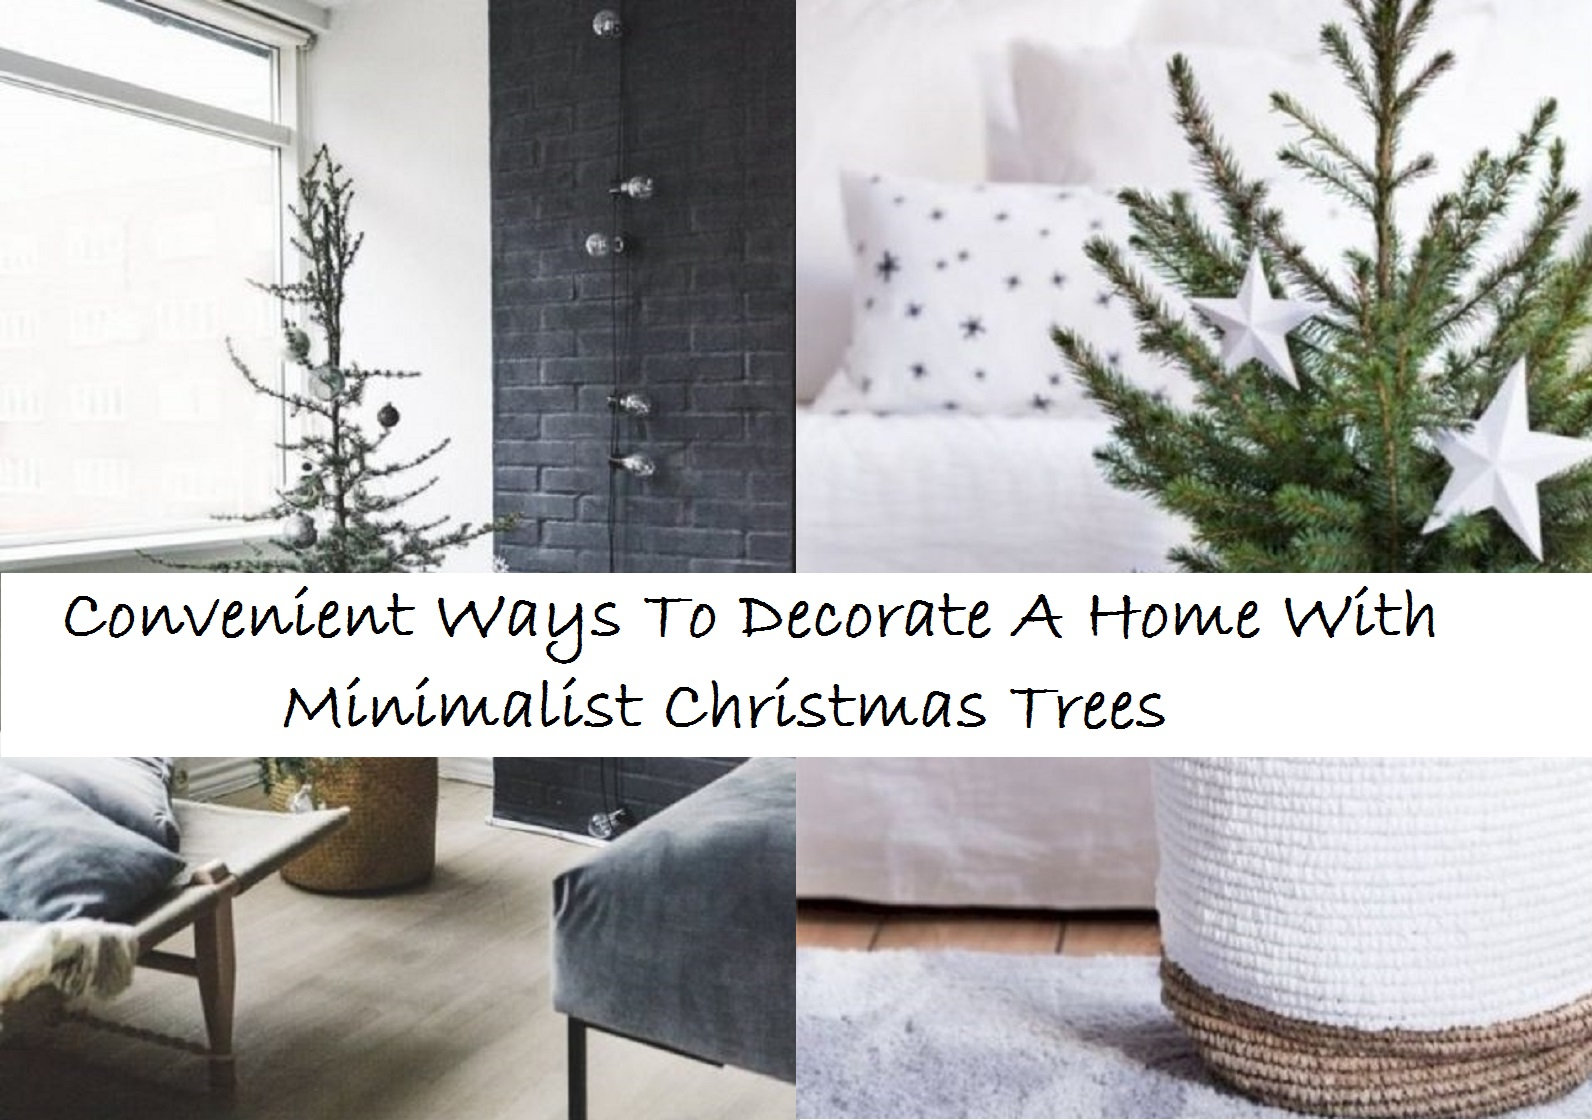 Convenient ways to decorate a home with minimalist christmas trees